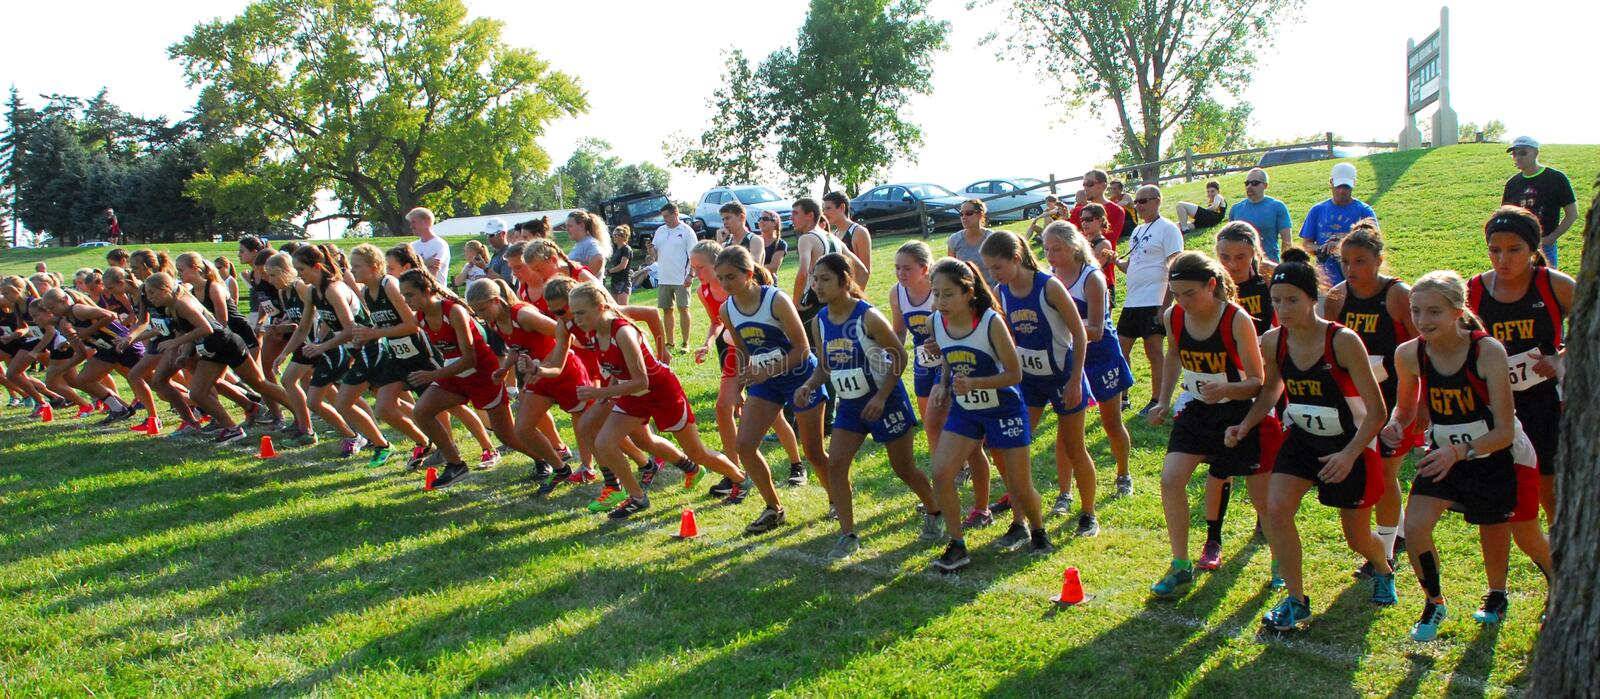 Cross country teams line up at the starting line stock image